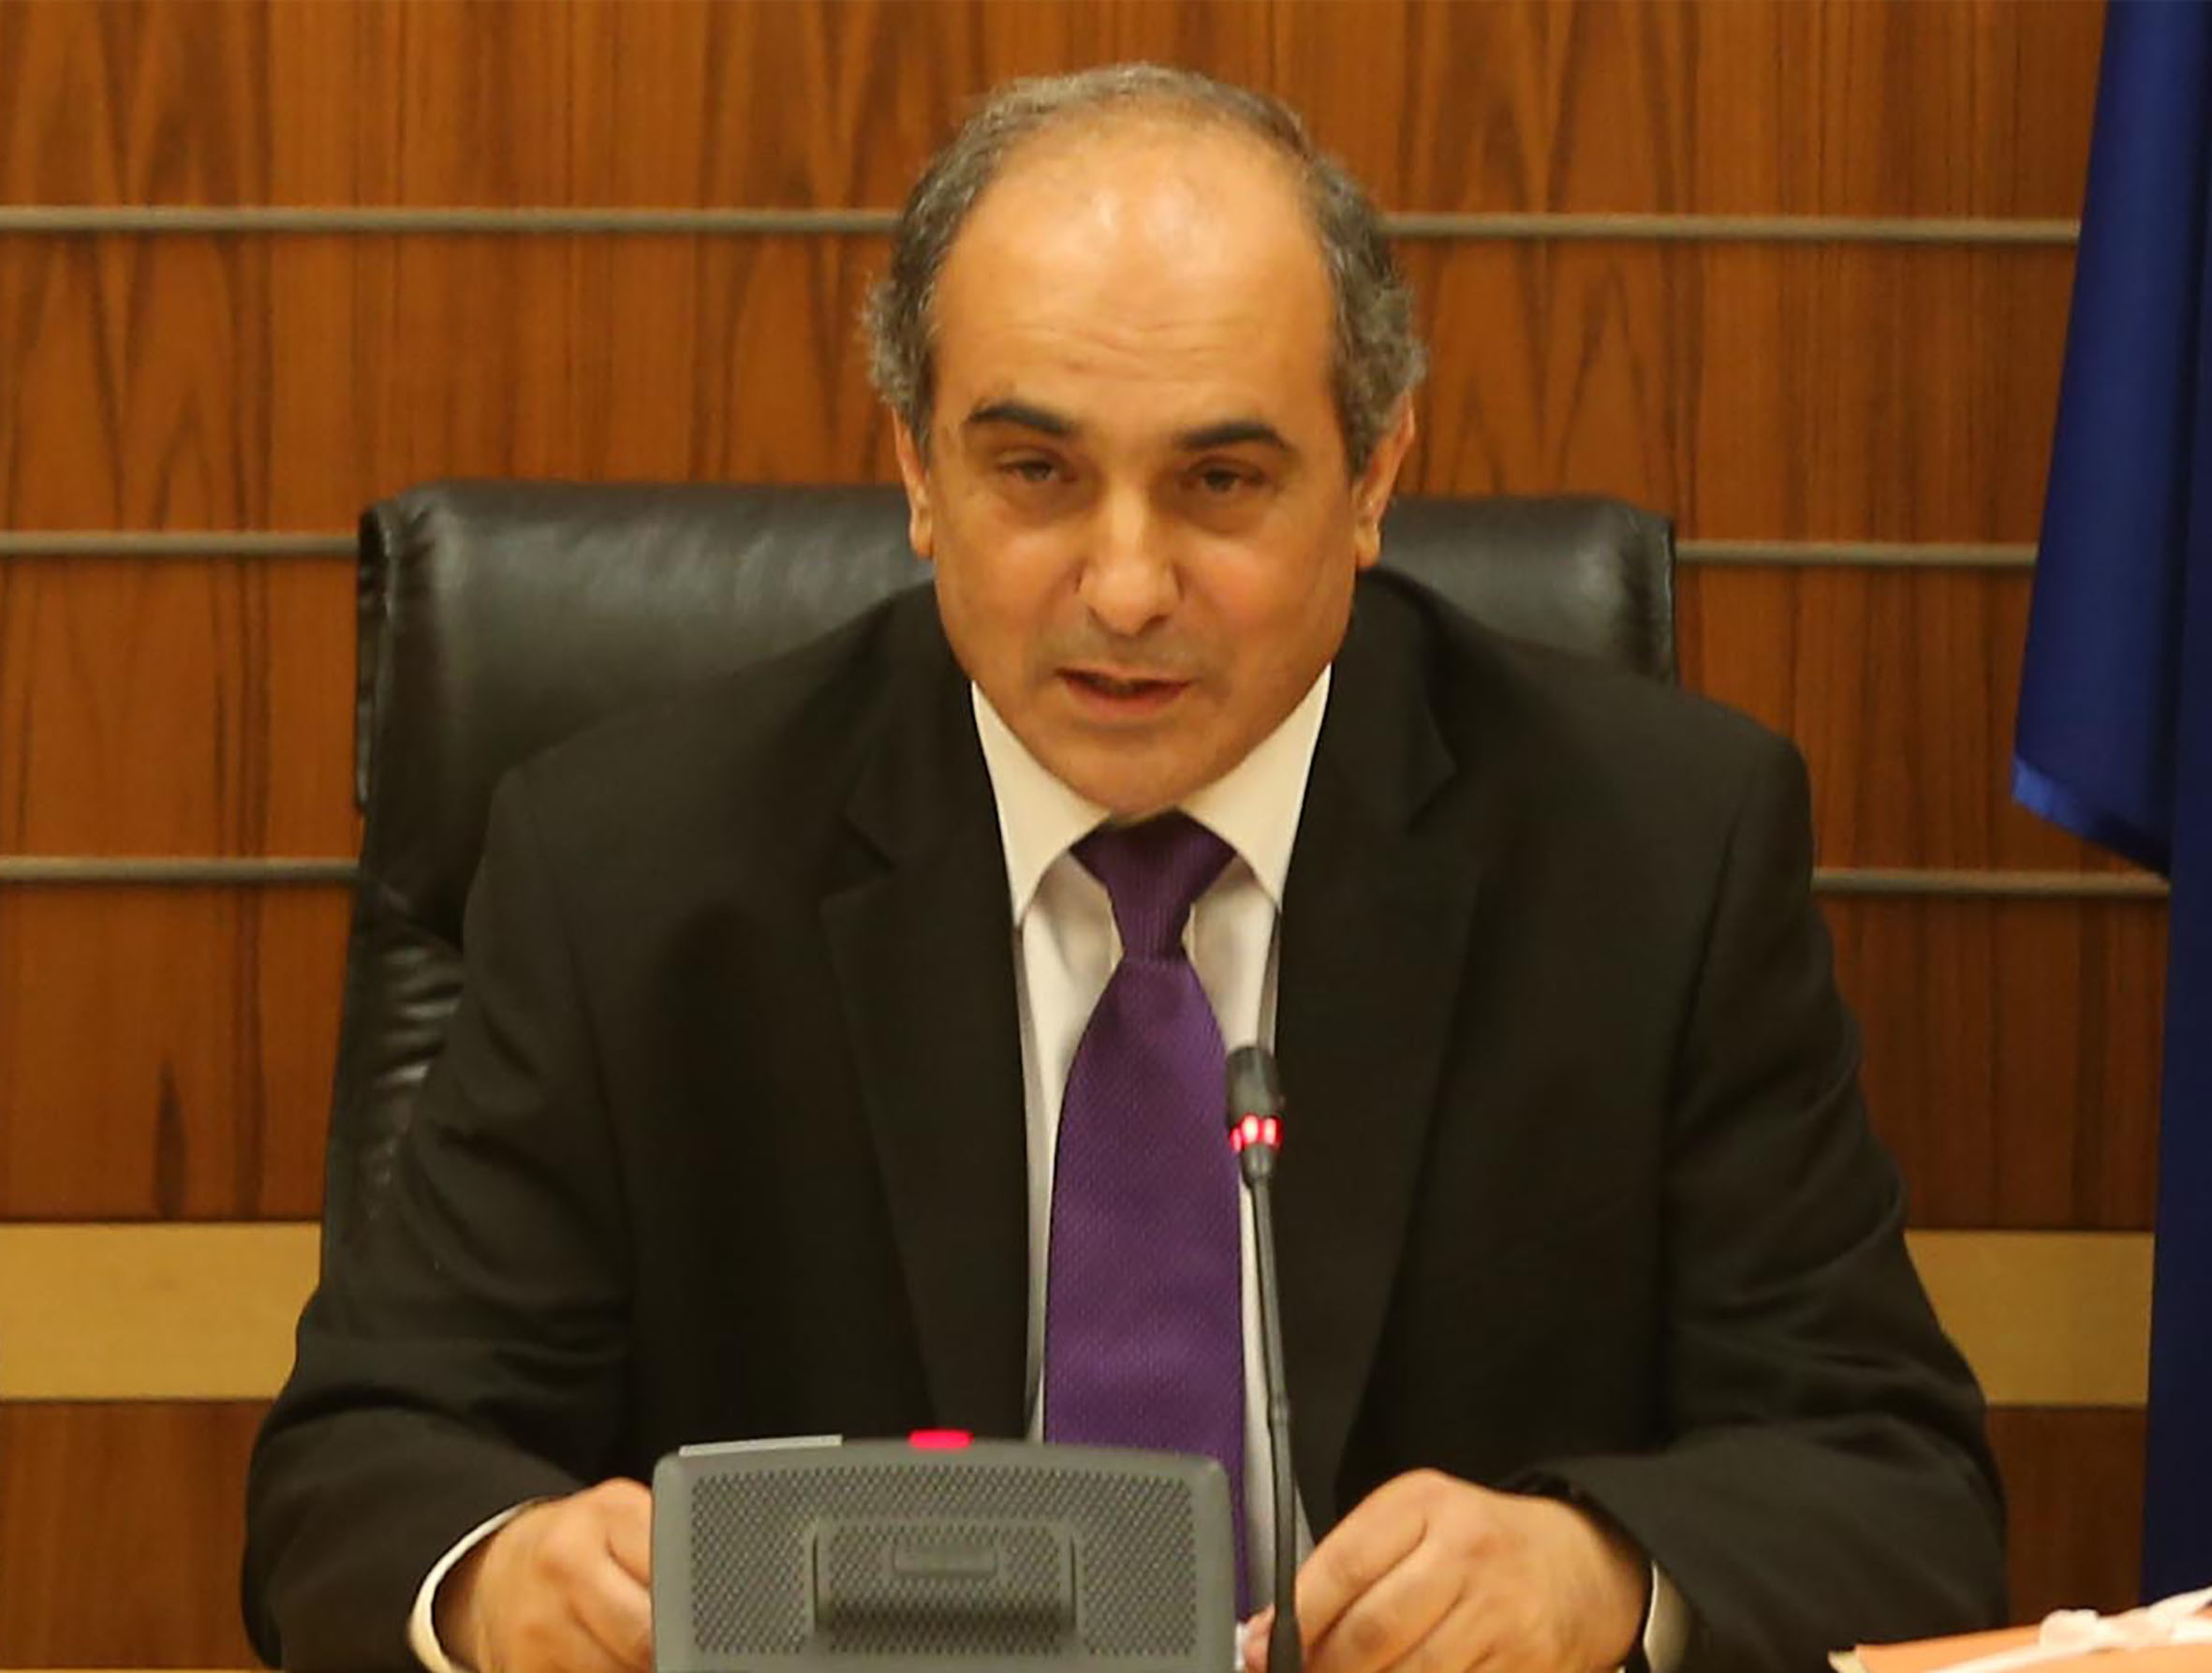 Turkey continues to violate the United Nations Resolutions on the Cyprus issue, says Cyprus' House President